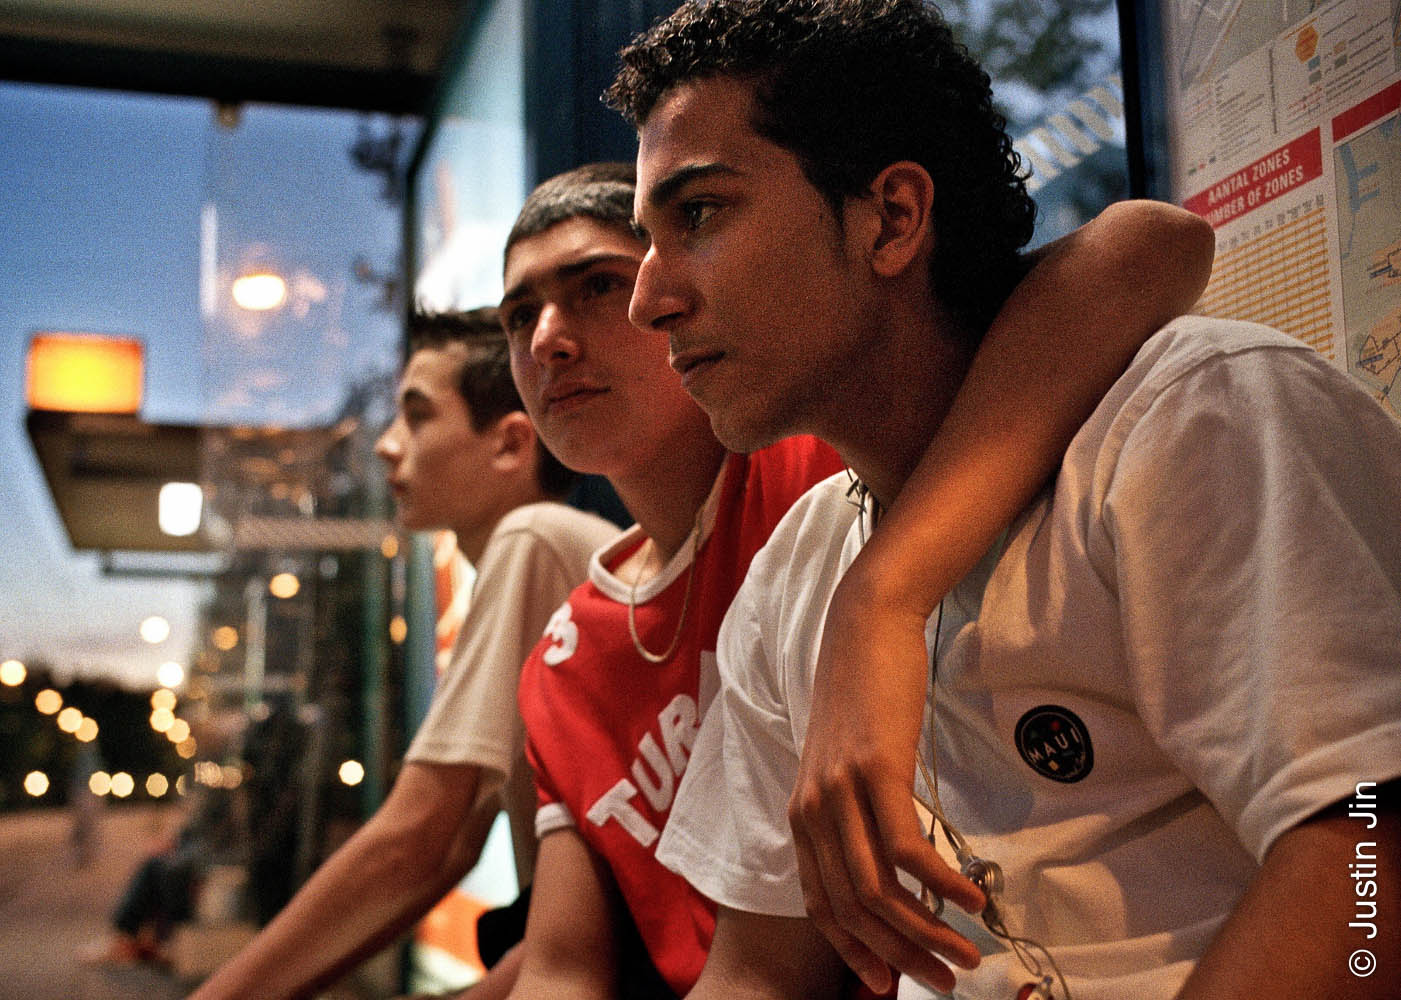 Dutch-Turkish teenager Hakan Dinc, 16, with his friends in Amsterdam.